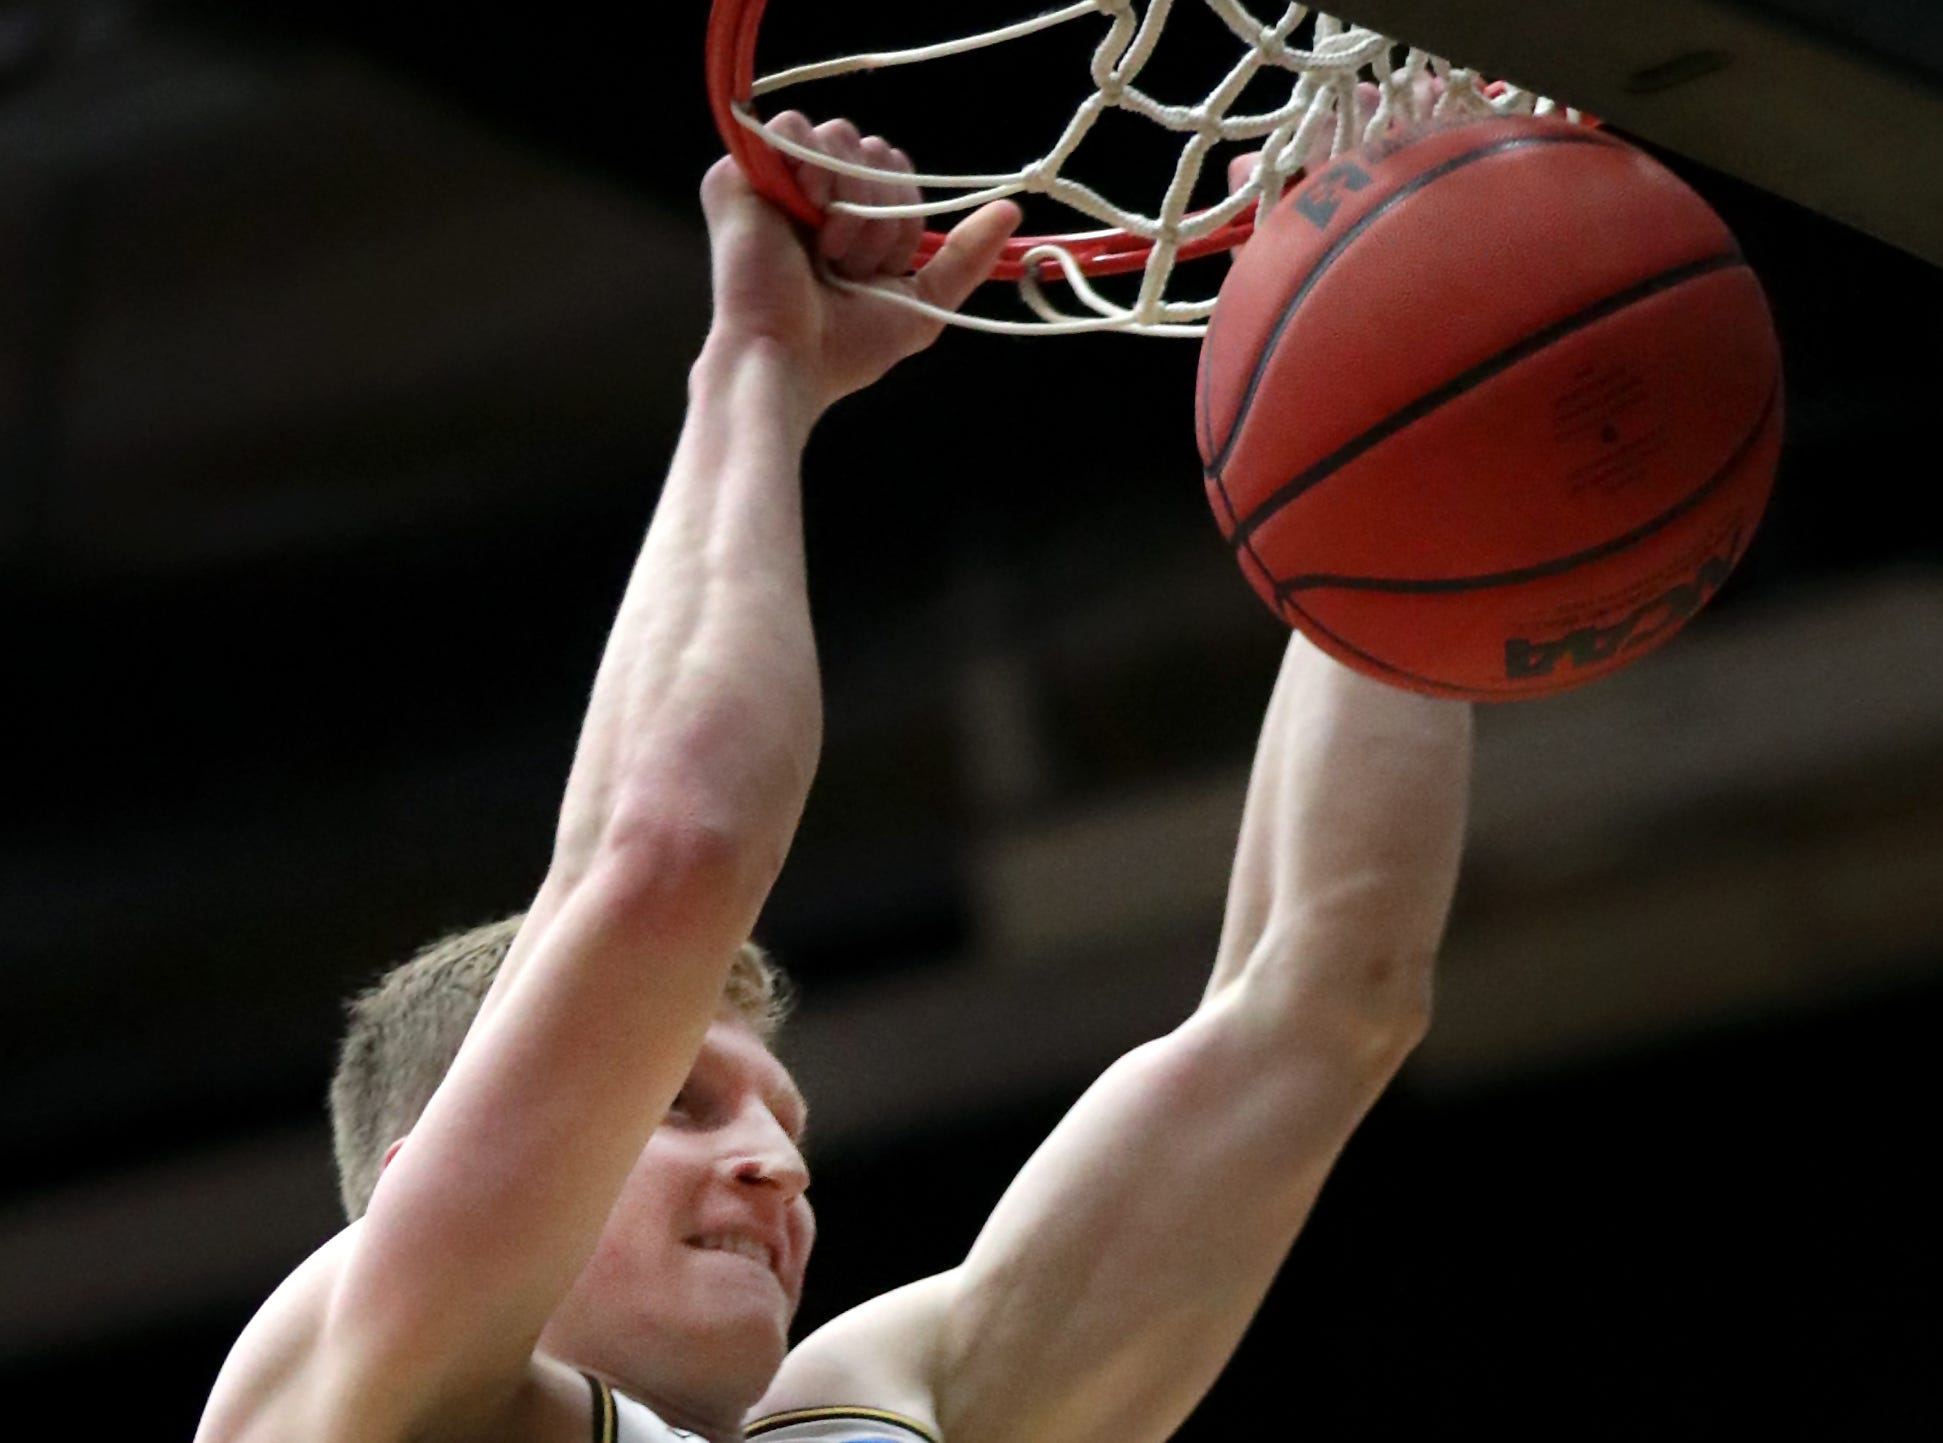 University of Wisconsin-Oshkosh's #20 Connor Duax dunks the ball in the first half against Loras College-Iowa during their NCAA DIII  Basketball Championship sectional game on Friday, March 8, 2019, at the Kolf Sports Center in Oshkosh, Wis. Oshkosh defeated Loras 86 to 75.Wm. Glasheen/USA TODAY NETWORK-Wisconsin.